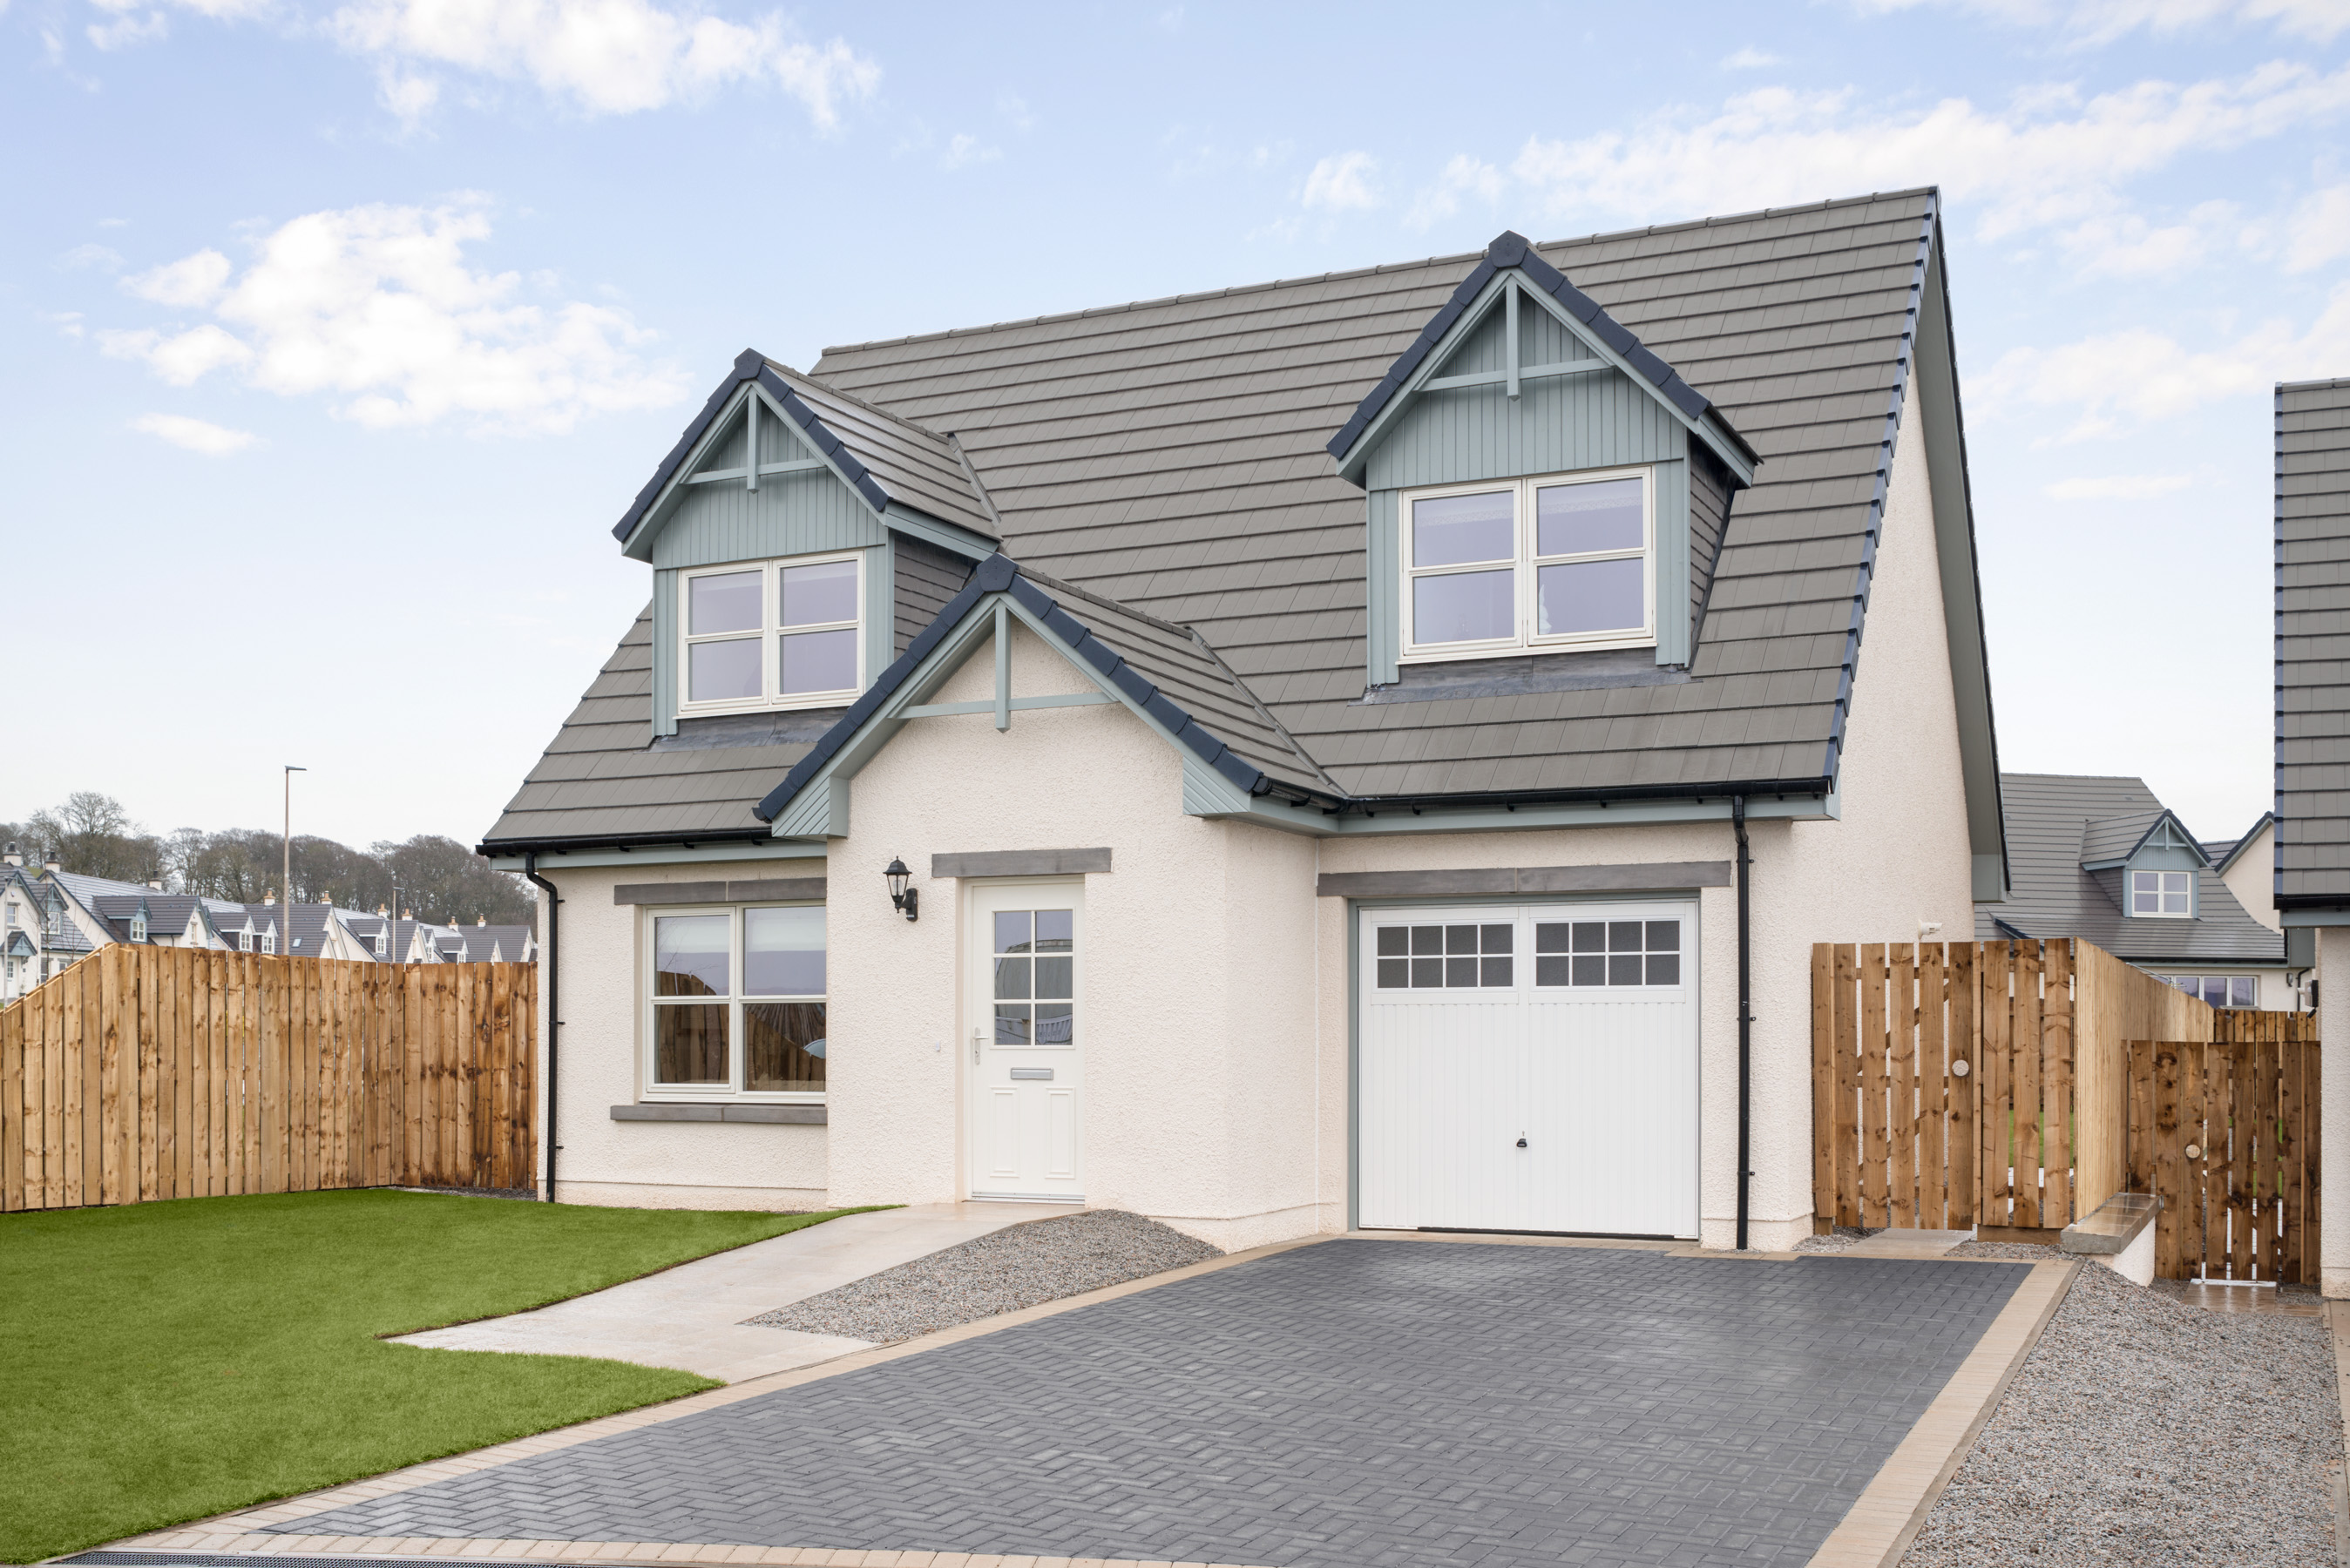 Plot 39 - The Craig - Kingsford Rise